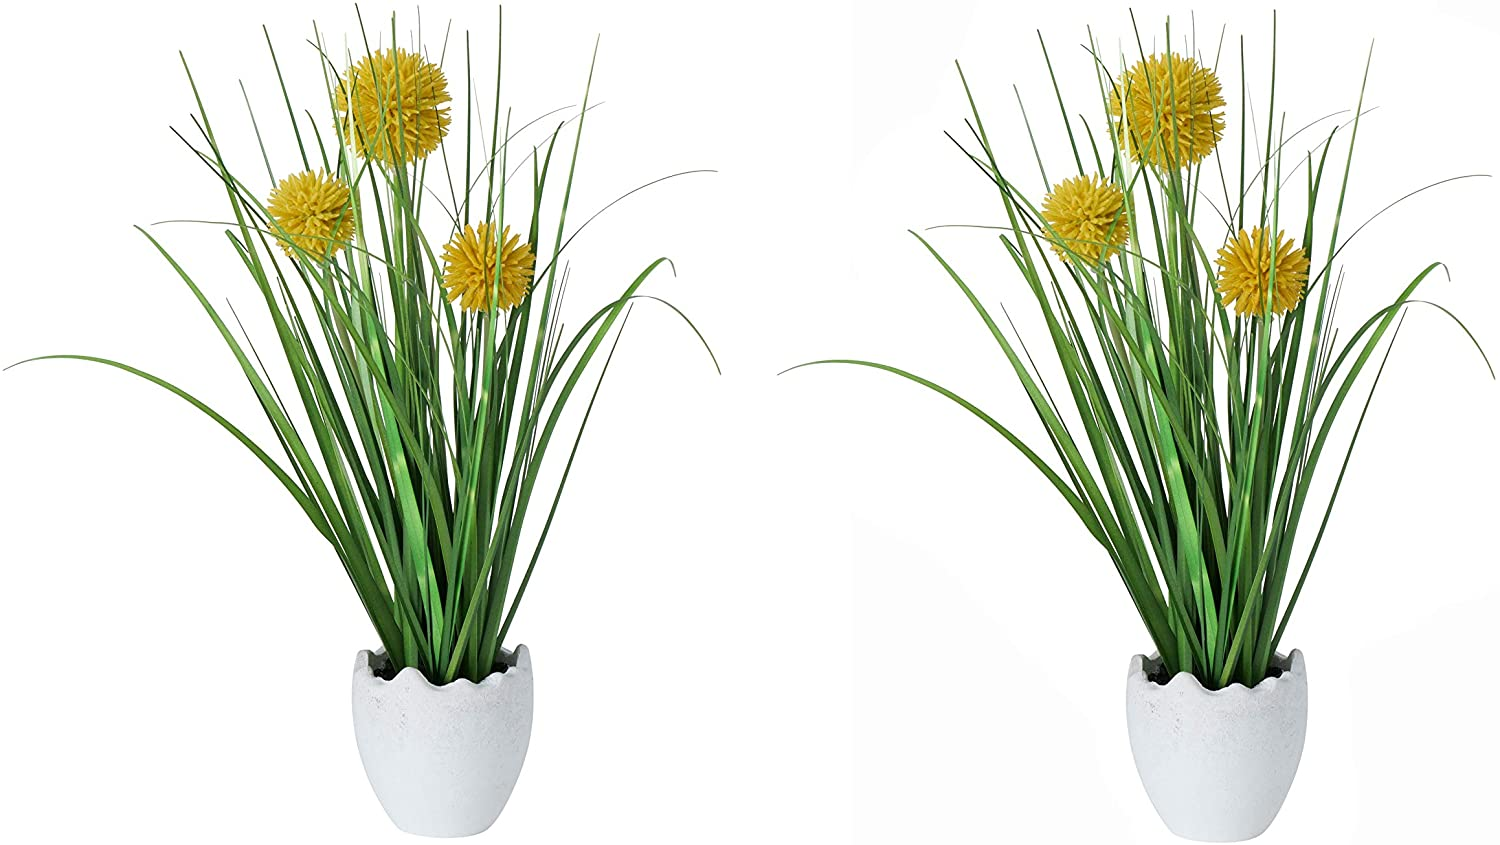 WHW Whole House Worlds Faux Billy Button Pom-pom Grass in Egg Pot, Set of 2, Pop Yellow, Spring Green and Shell White, 6.0 D x 10.25 H Inches, Artificial Craspedia